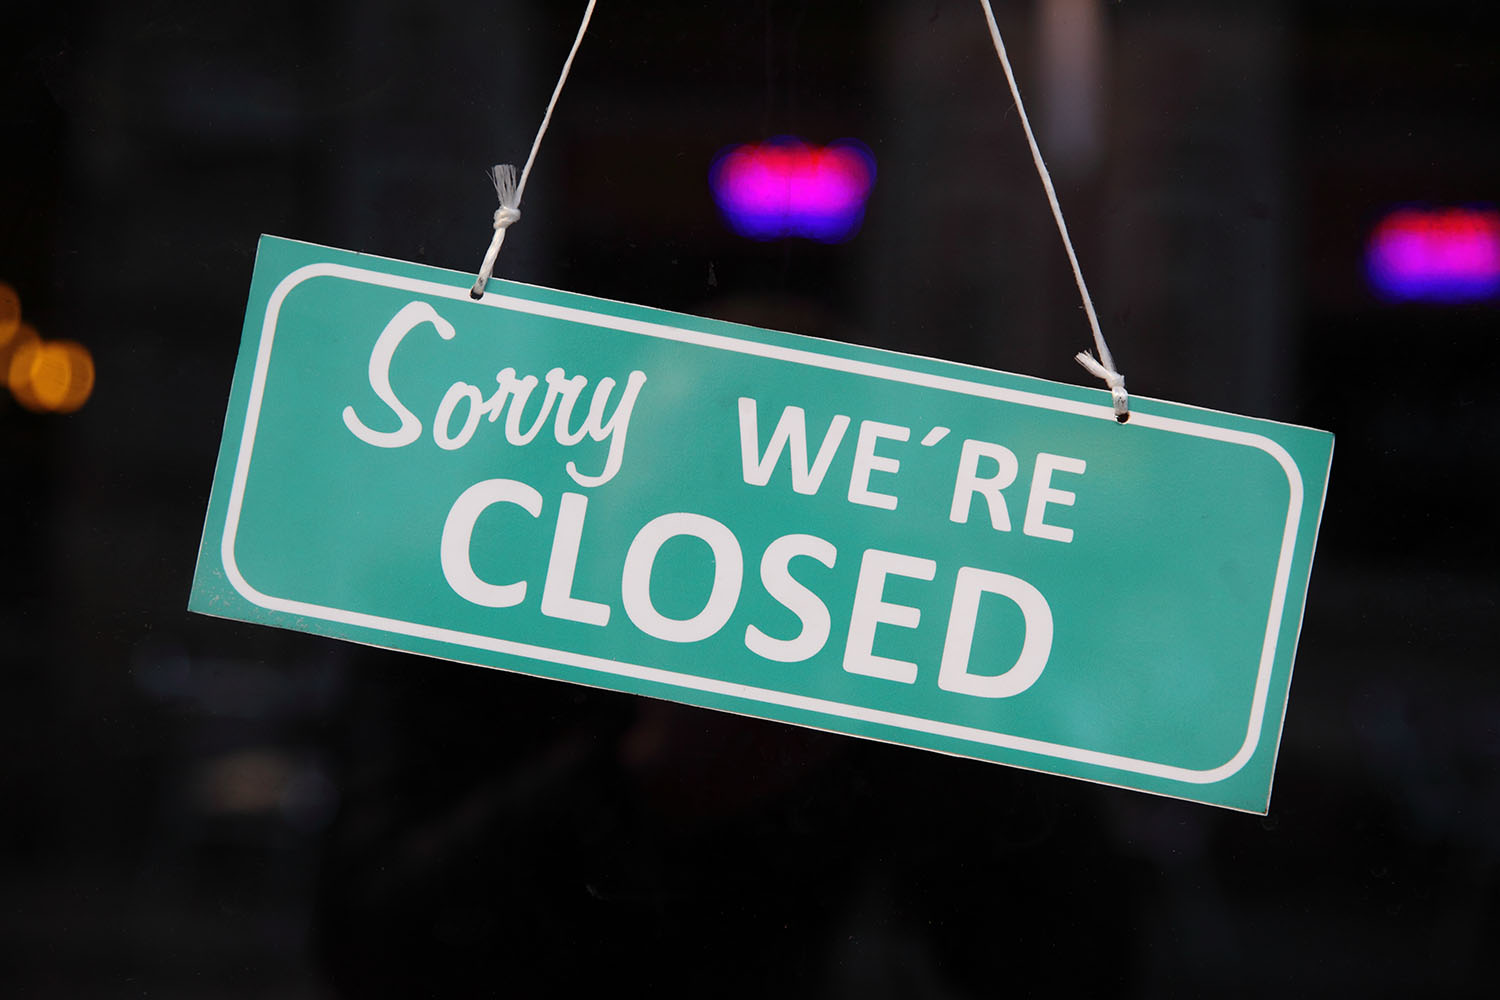 Sorry we are closed sign hanging on a restaurant door.